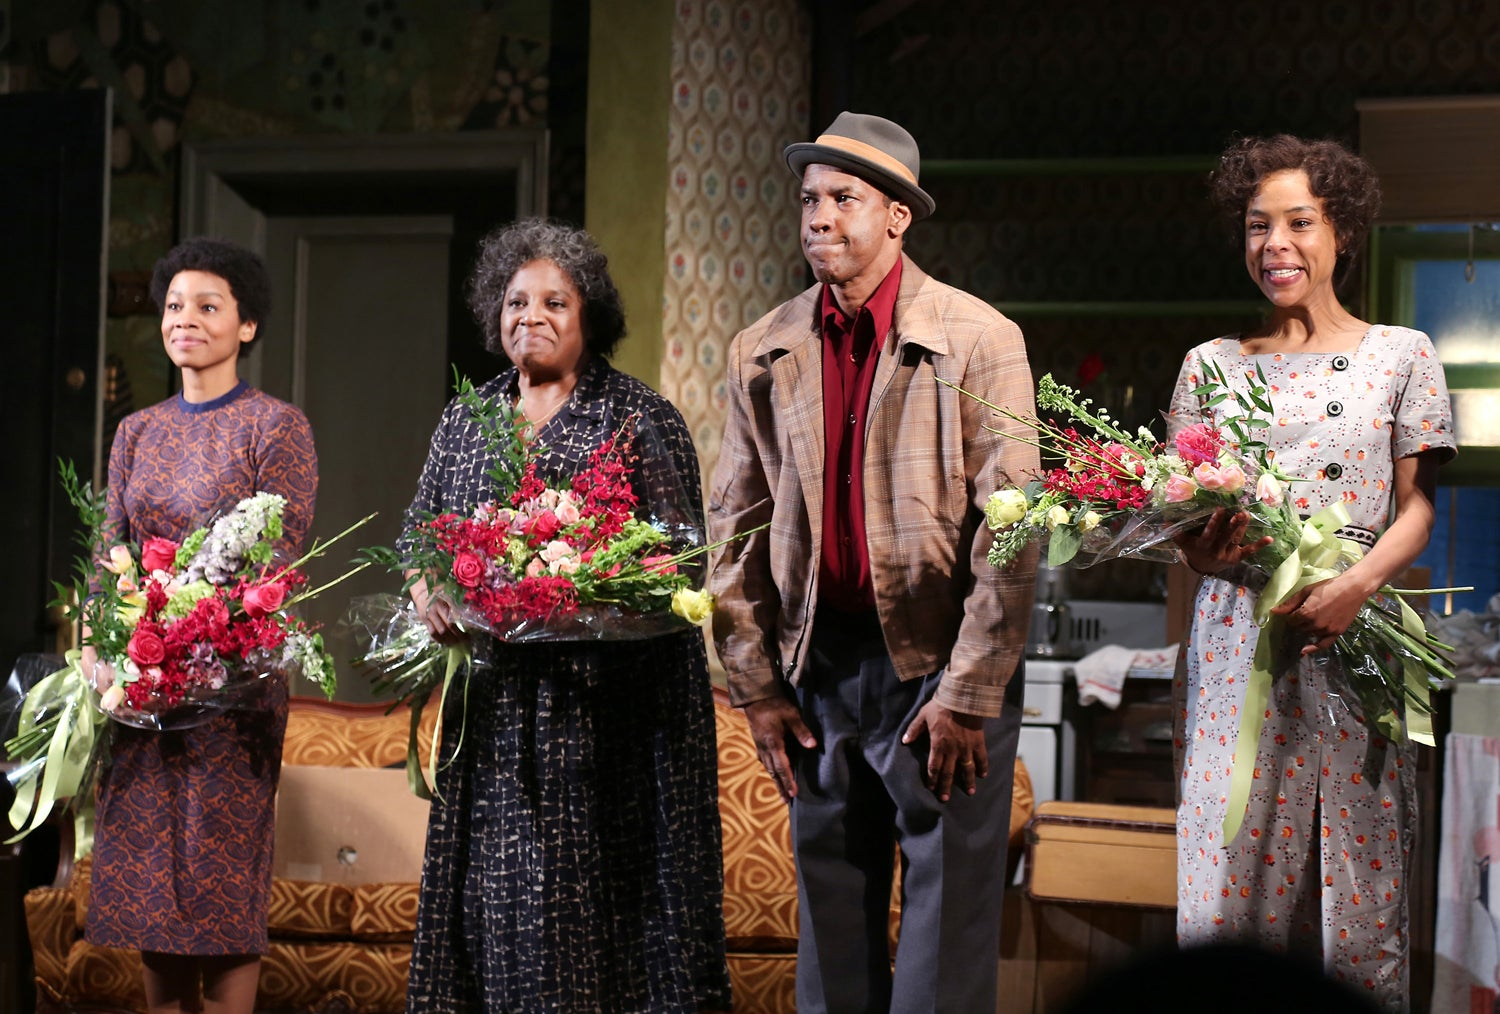 Tony Awards 2014: 'A Raisin in the Sun' Earns 5 Noms, Audra McDonald Could Make History